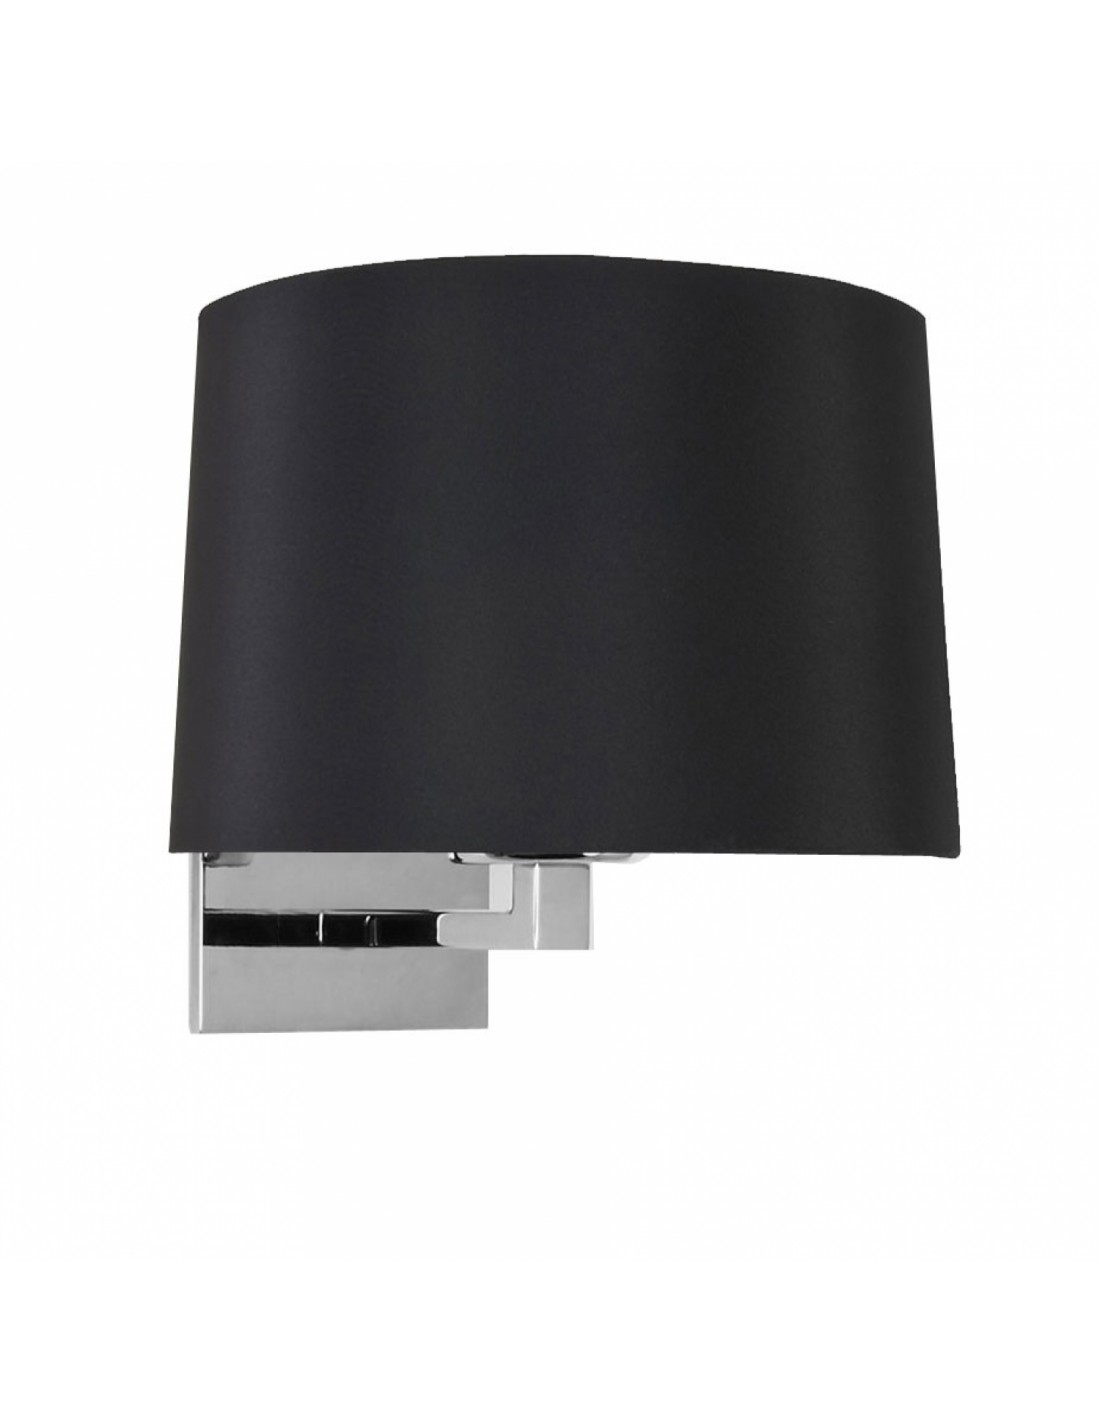 Applique Azumi nickel poli abat-jour noir rond astro lighting